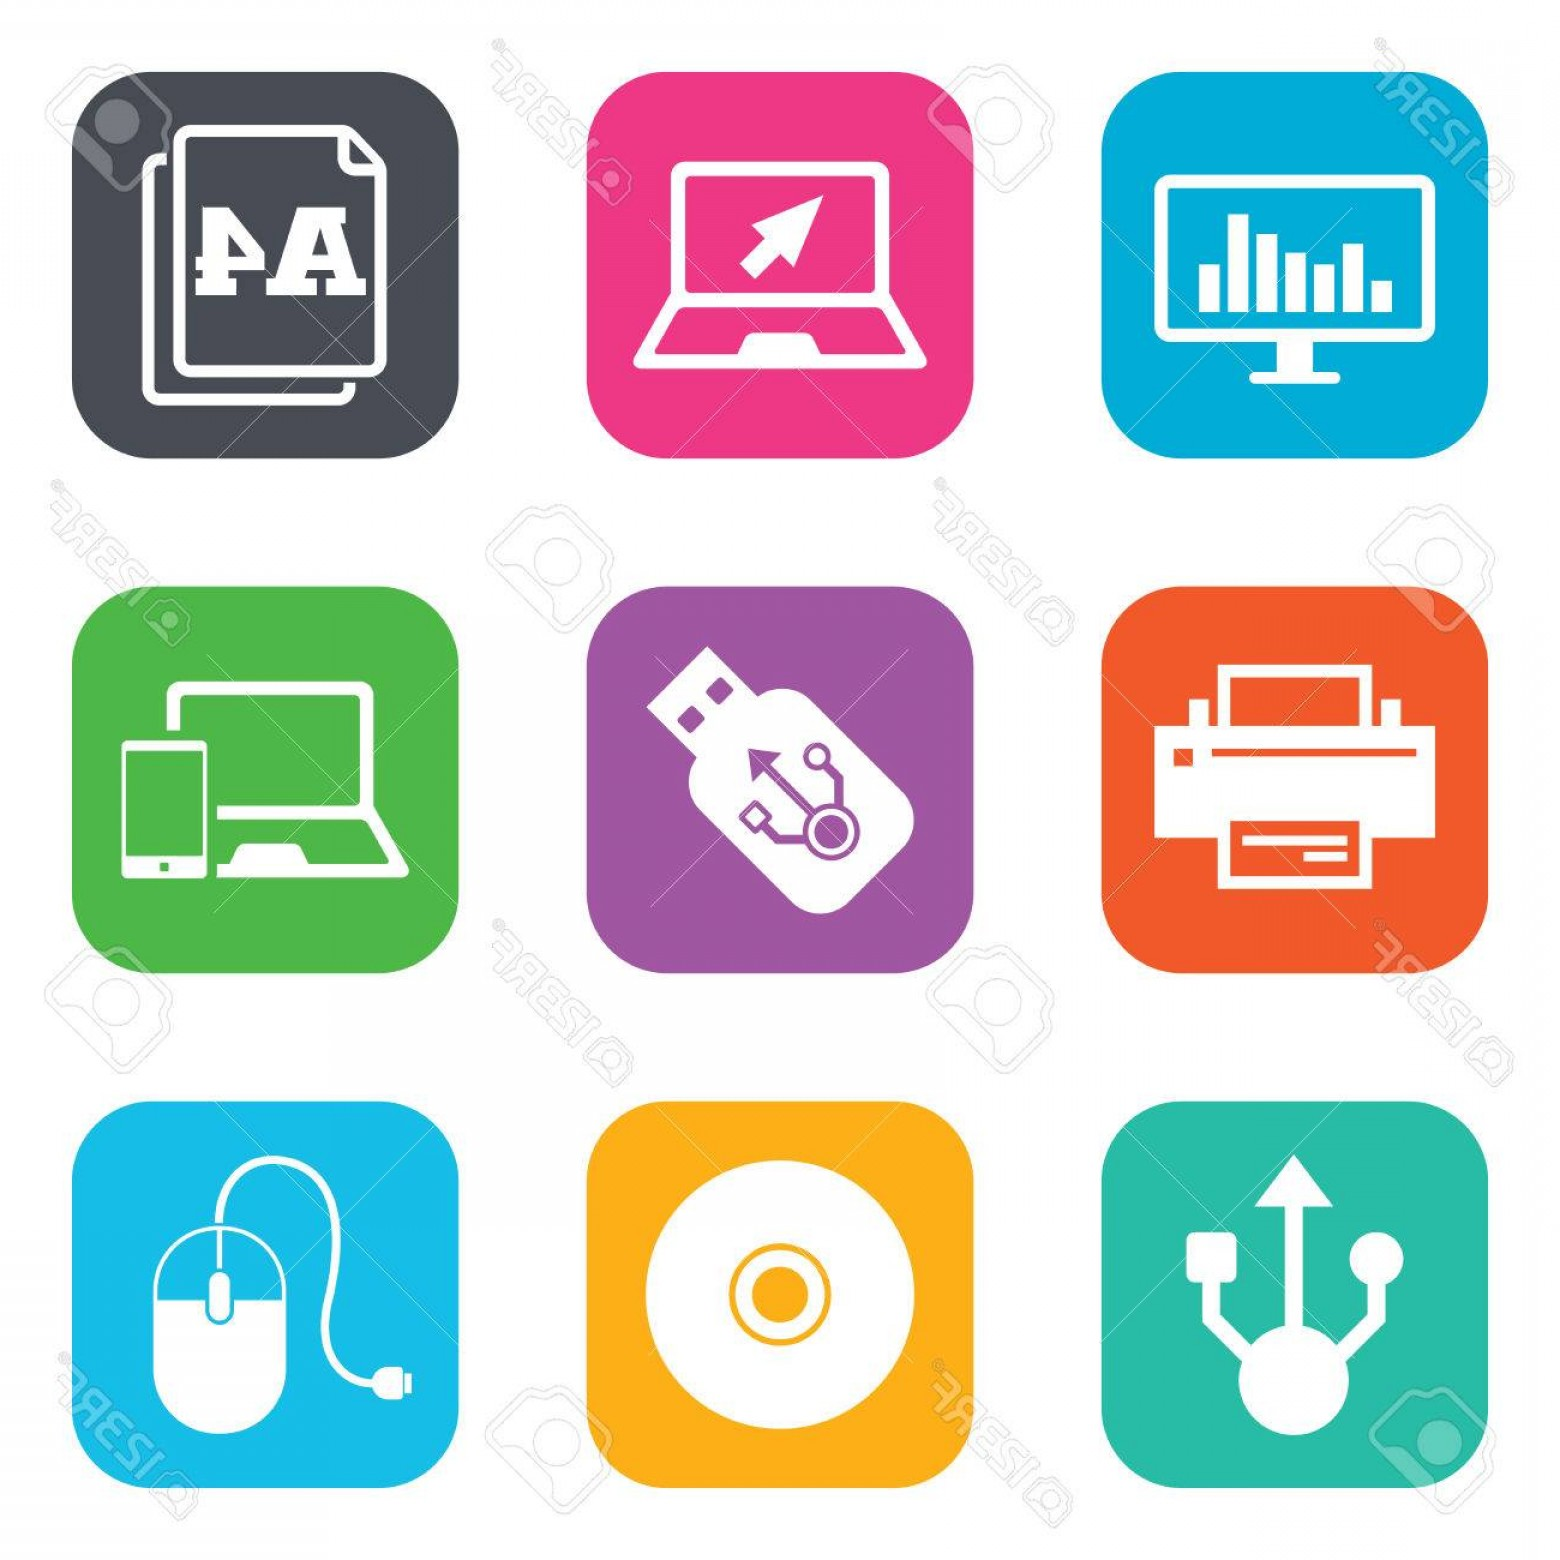 Buttons Vector Art: Photostock Vector Computer Devices Icons Printer Laptop Signs Smartphone Monitor And Usb Symbols Flat Square Buttons V